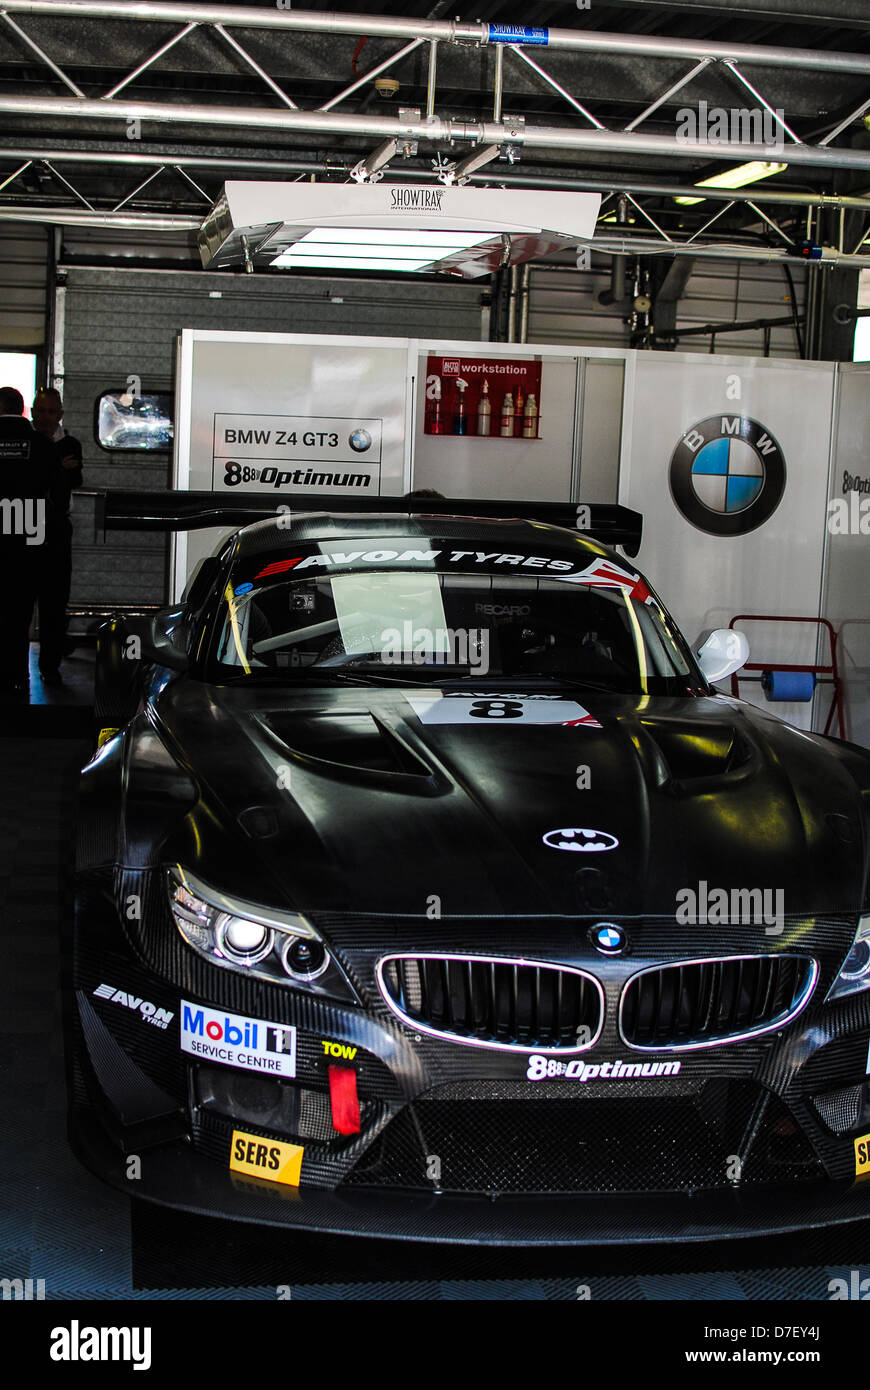 Bmw racing car british gt pit garage stock photo royalty for Garage bmw creteil